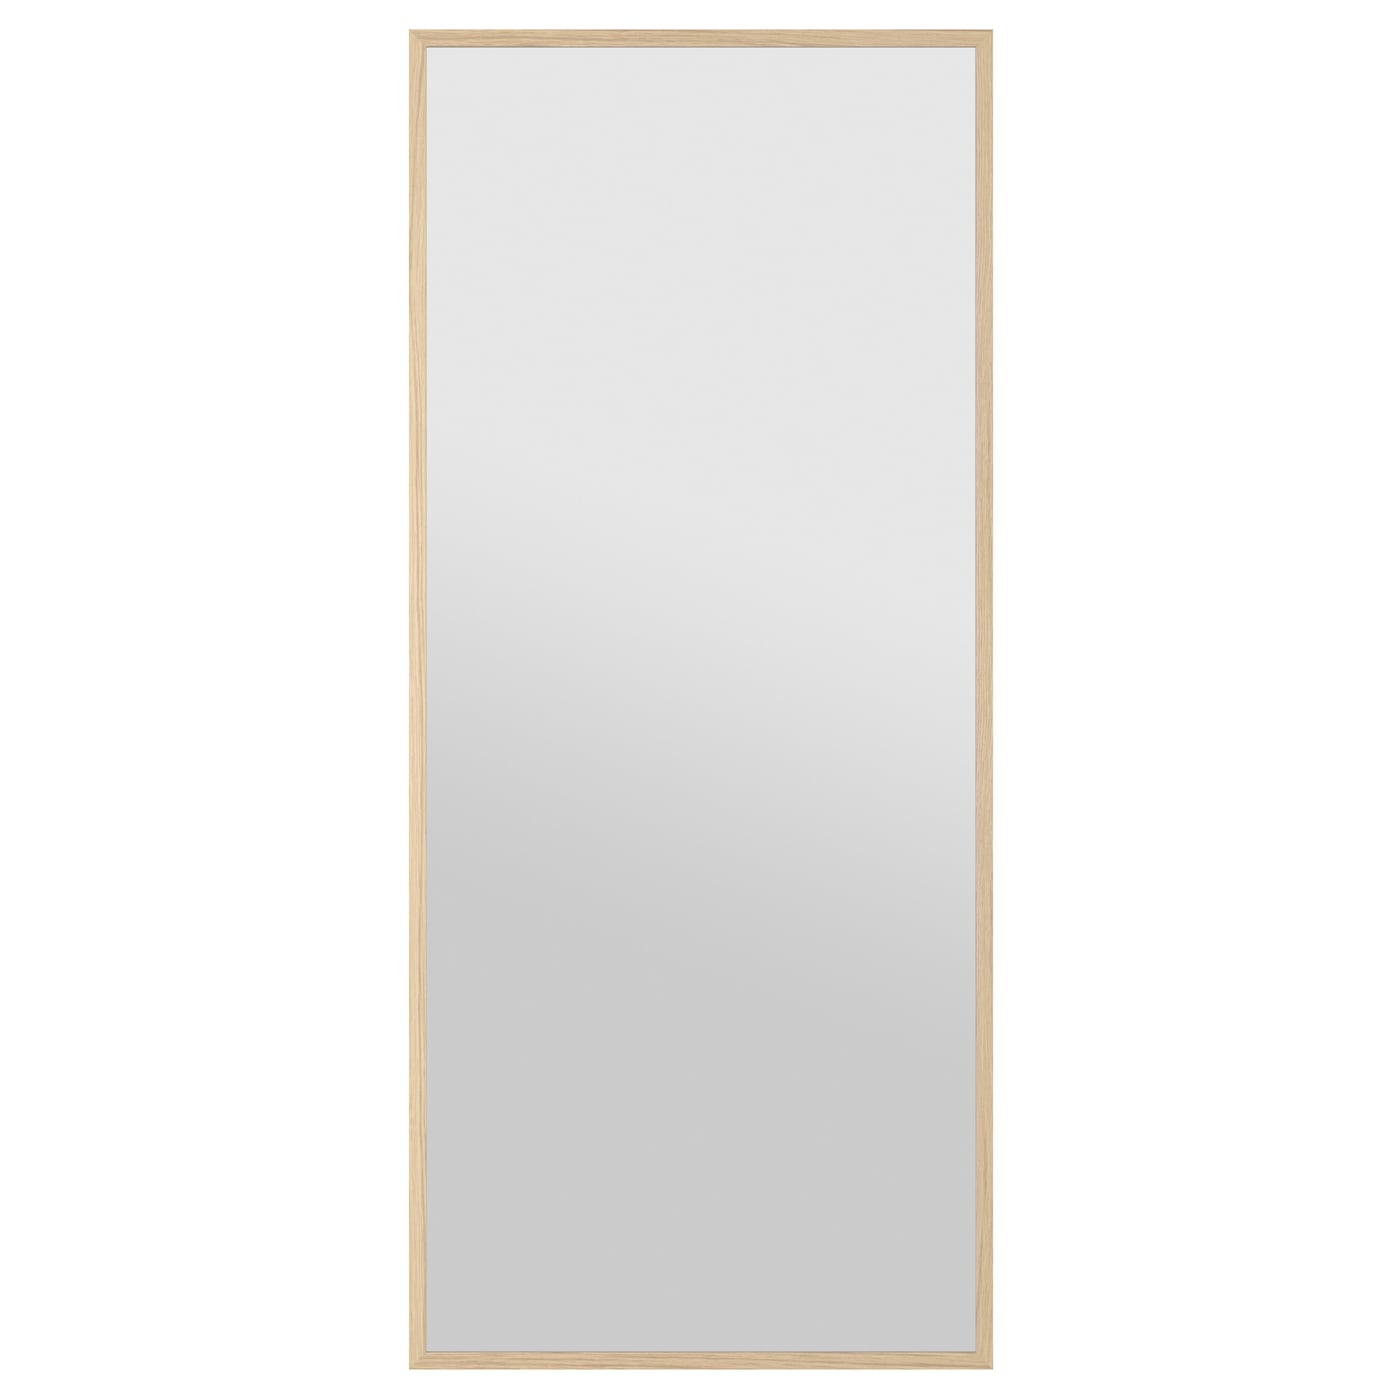 ikea spiegel songe spiegel songe von ikea songe mirror silver colour 91x130 cm ikea spiegel. Black Bedroom Furniture Sets. Home Design Ideas